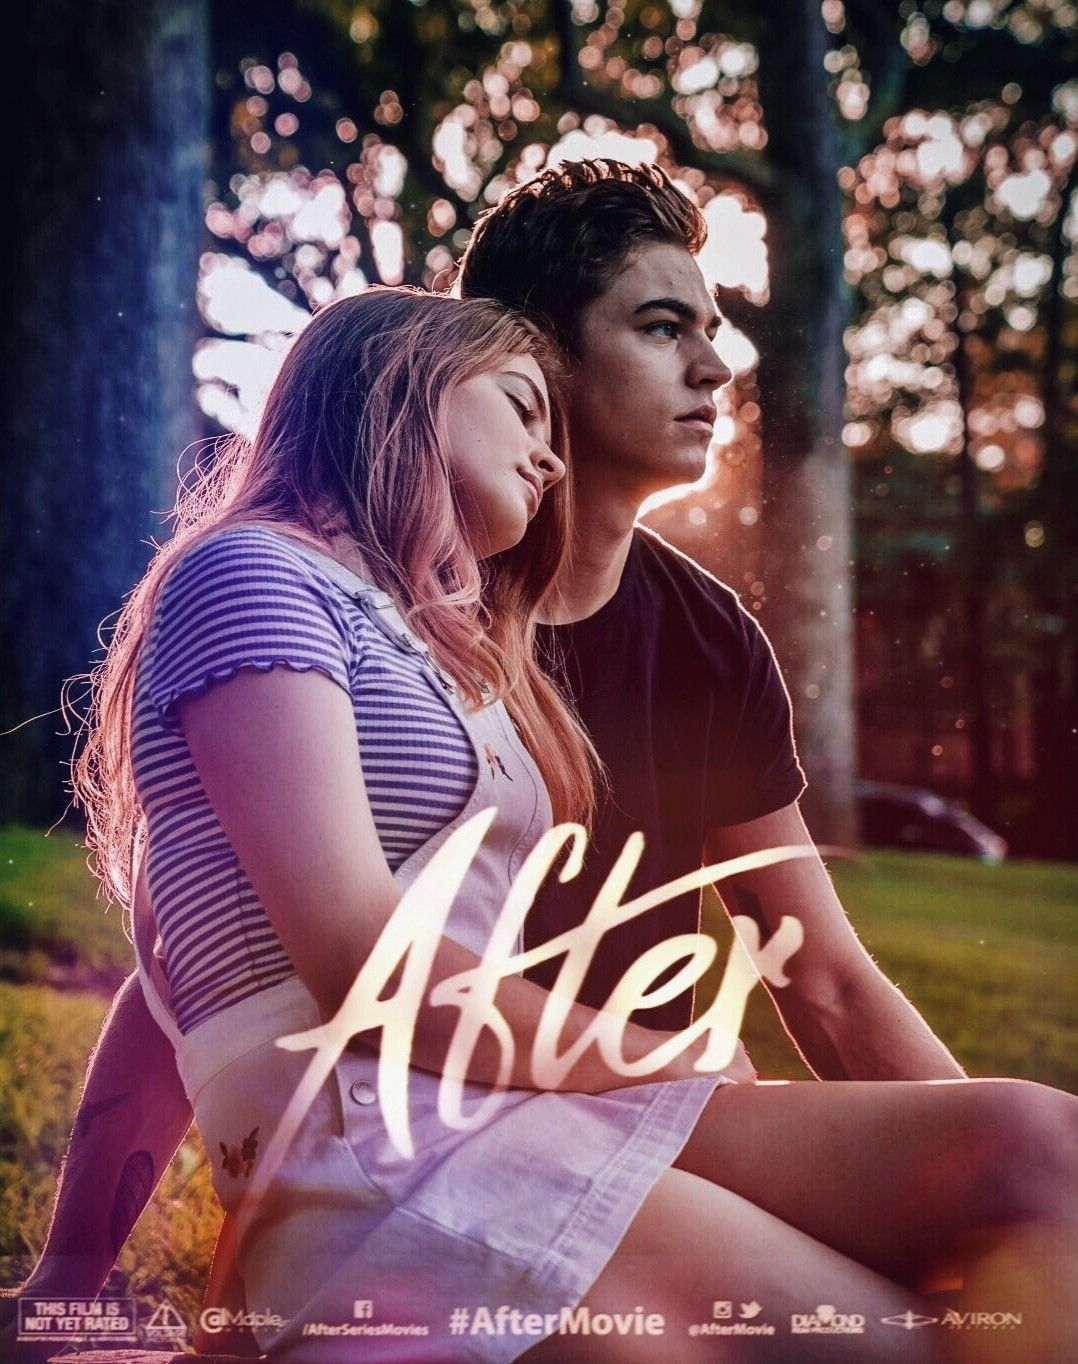 Main characters Hardin and Tessa recline on the grass for the cover of the YA novel movie poster.